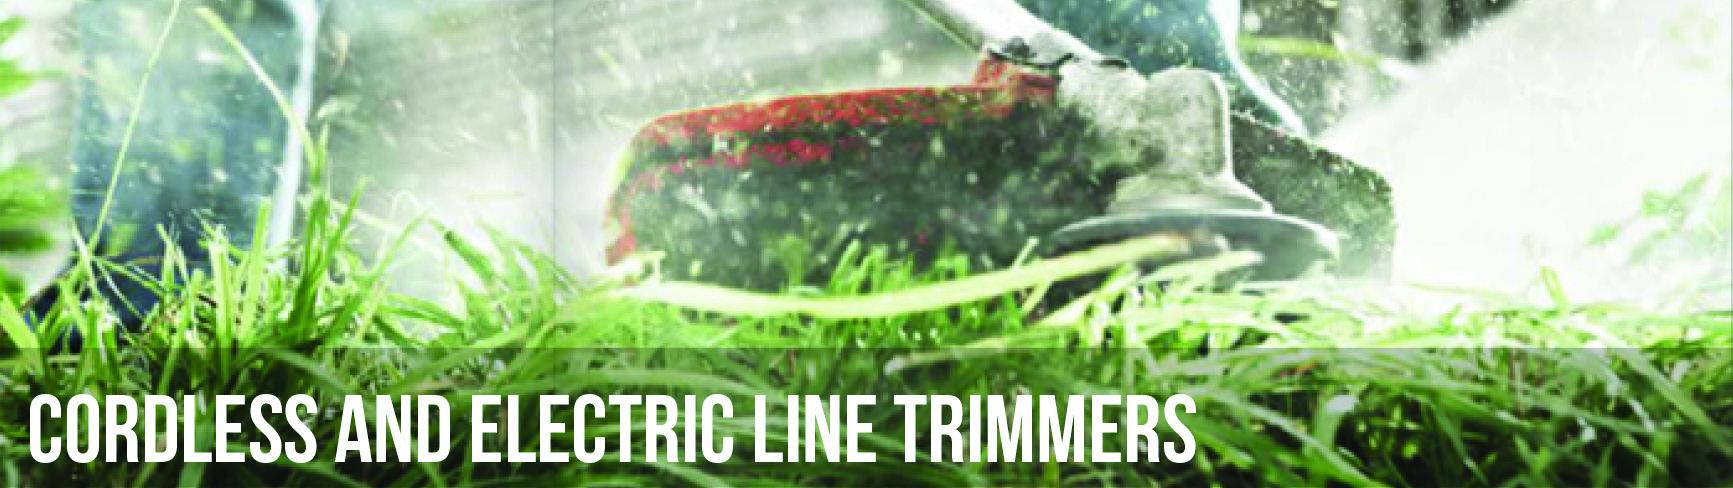 category_top_electrictrimmers